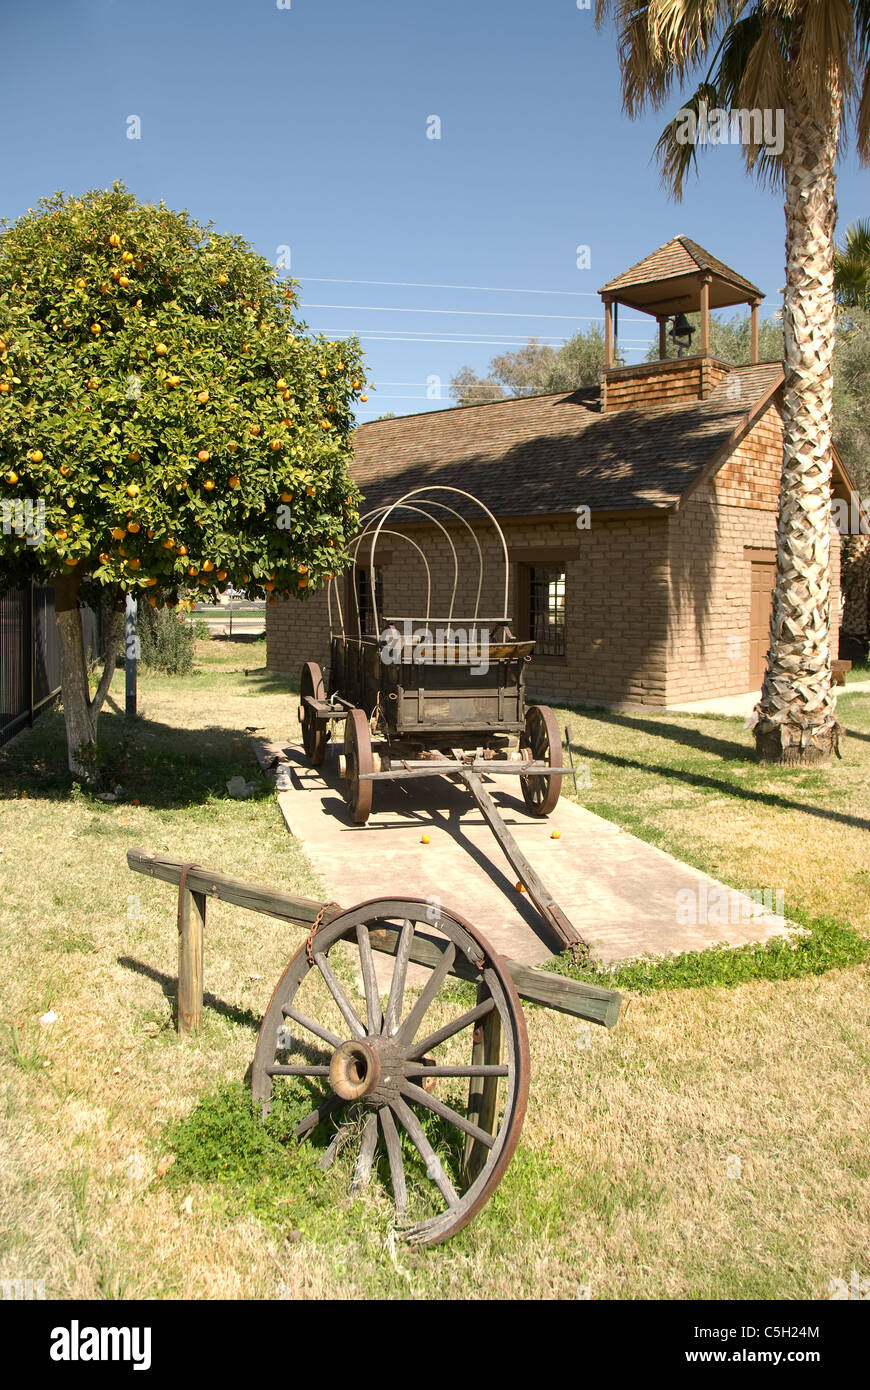 A setting of the old west shows how it might have looked 120 years ago. - Stock Image